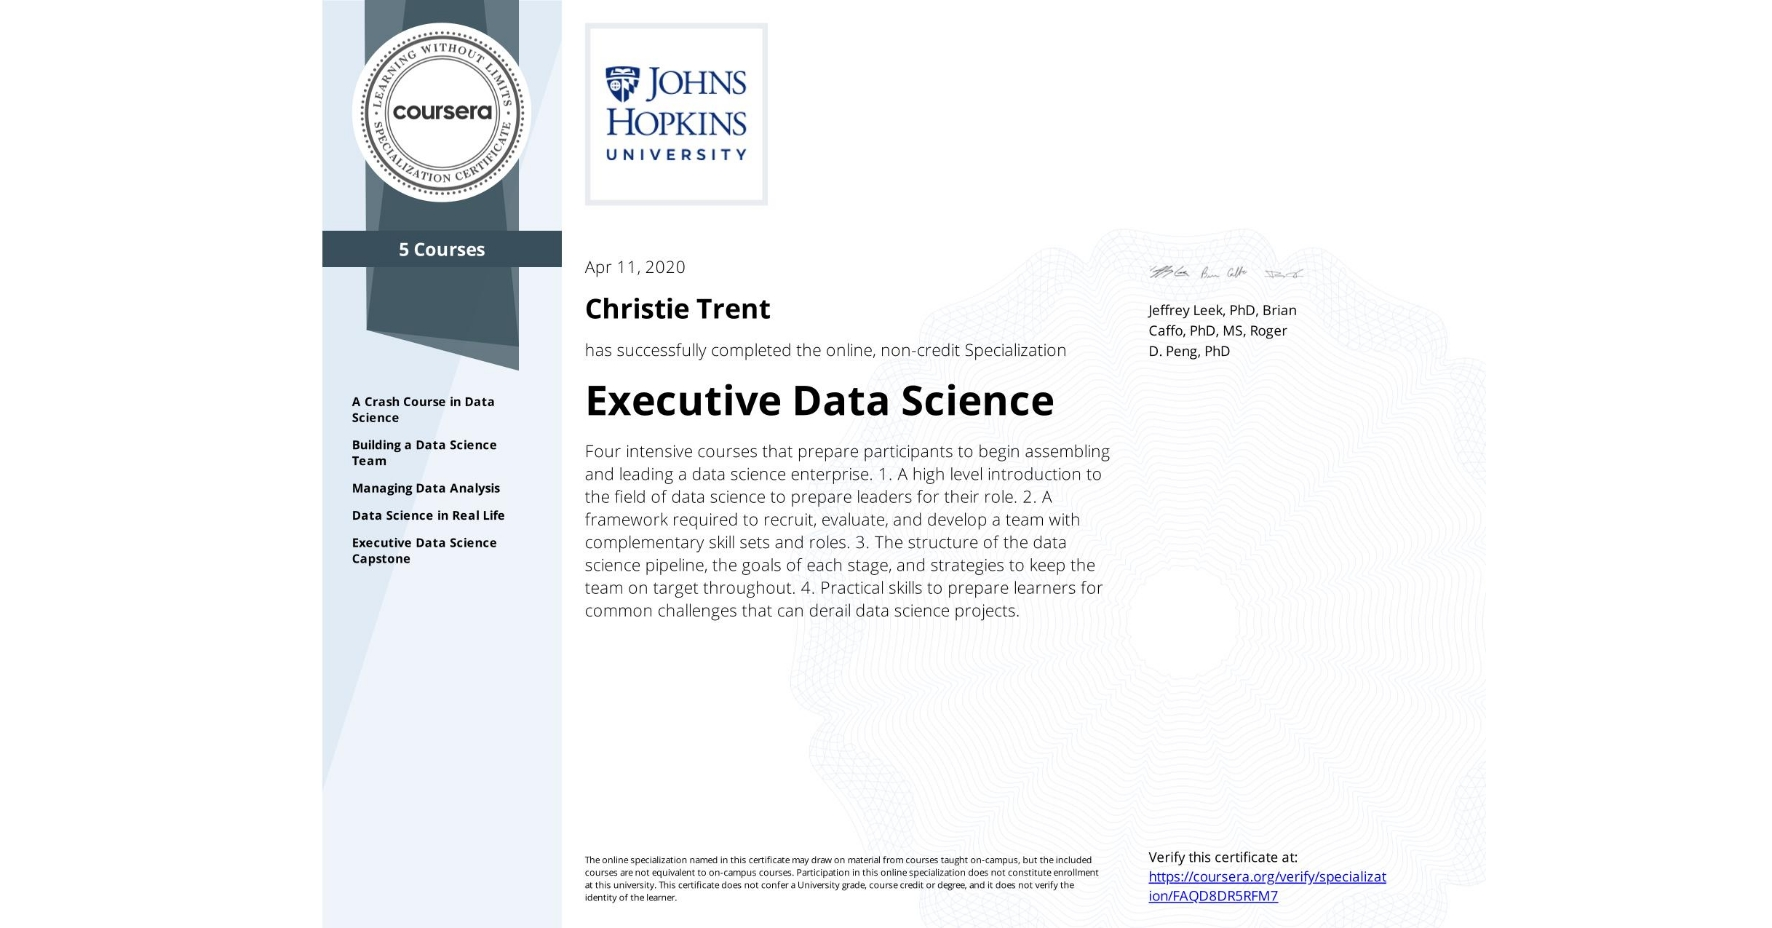 View certificate for Christie Trent, Executive Data Science, offered through Coursera. Four intensive courses that prepare participants to begin assembling and leading a data science enterprise.    1. A high level introduction to the field of data science to prepare leaders for their role. 2. A framework required to recruit, evaluate, and develop a team with complementary skill sets and roles. 3. The structure of the data science pipeline, the goals of each stage, and strategies to keep the team on target throughout. 4. Practical skills to prepare learners for common challenges that can derail data science projects.